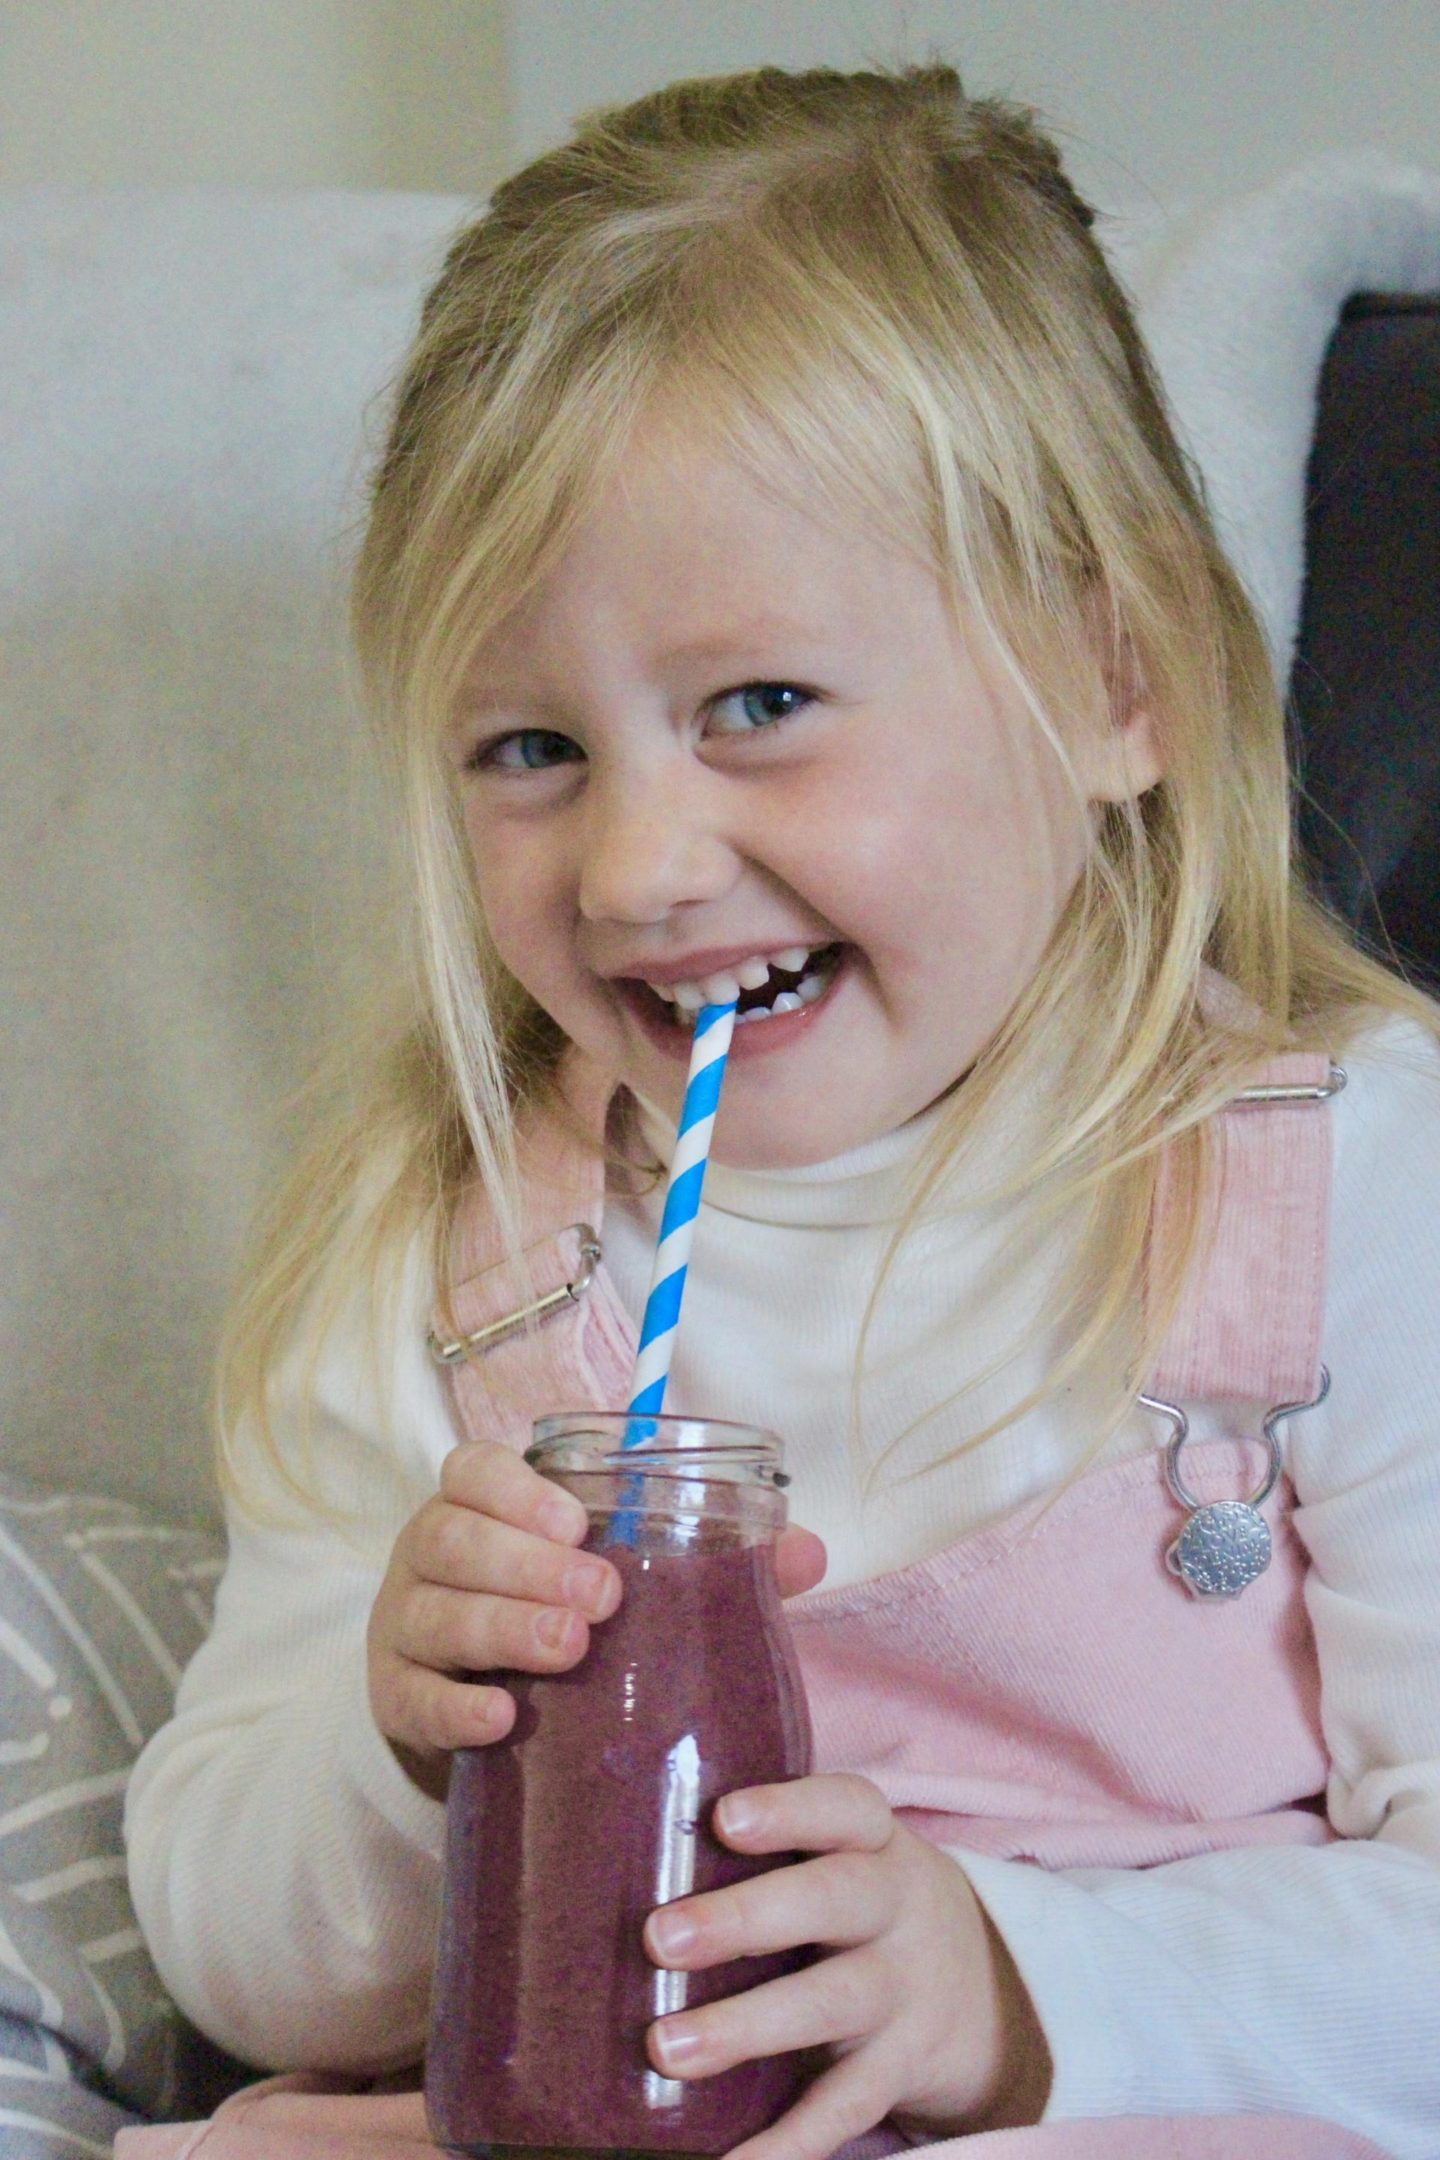 smoothie recipe's for kids